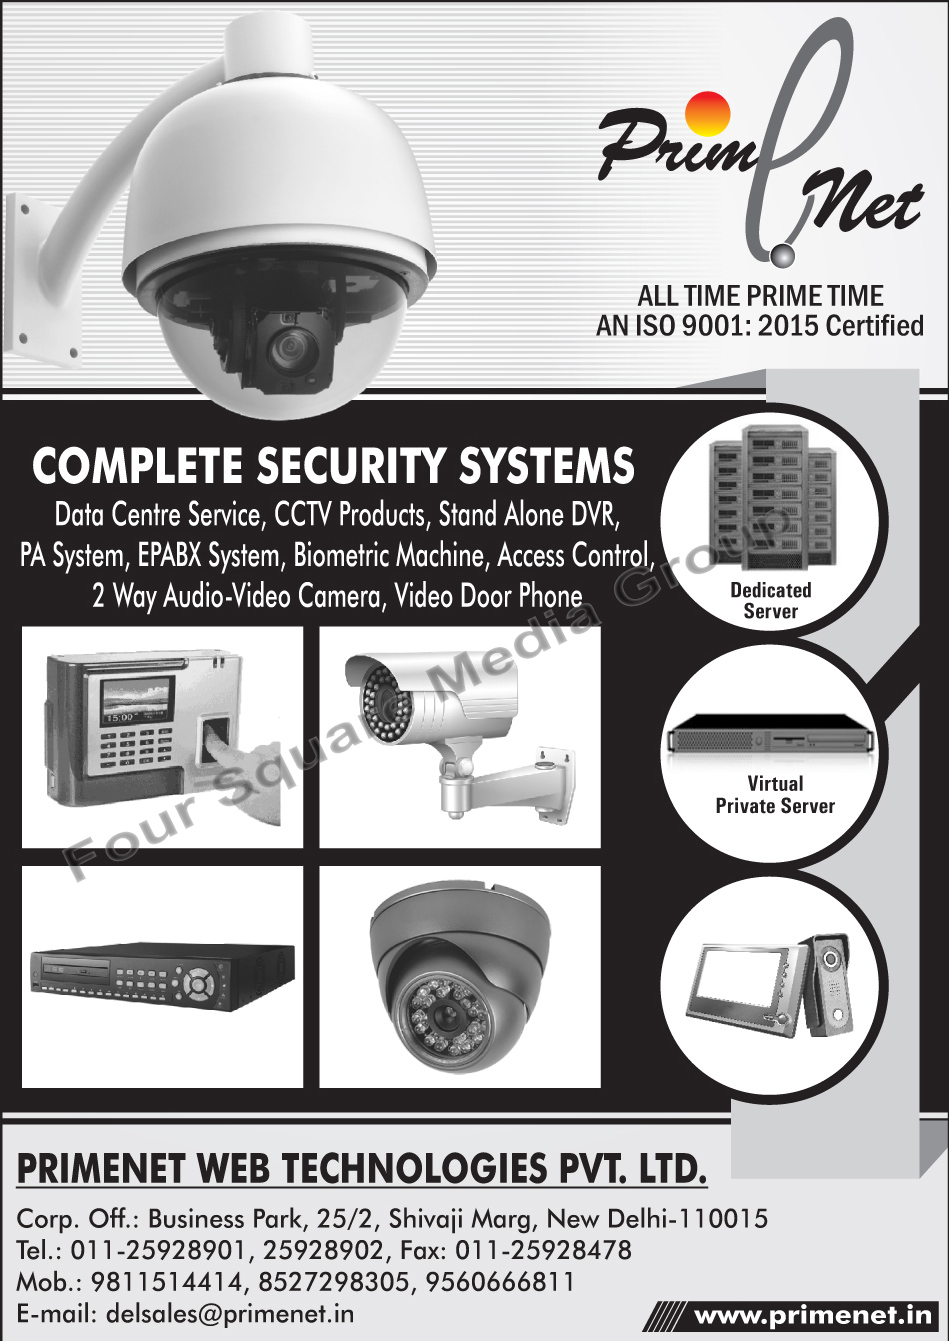 Data Centre Services, CCTV Products, Stand Alone DVR, Stand Alone Digital Video Recorders, PA Systems, EPABX Systems, Biometric Machines, Access Control Machines, Two Way Audio Video Cameras, 2 Way Audio Video Cameras, Video Door Phones, Virtual Private Servers